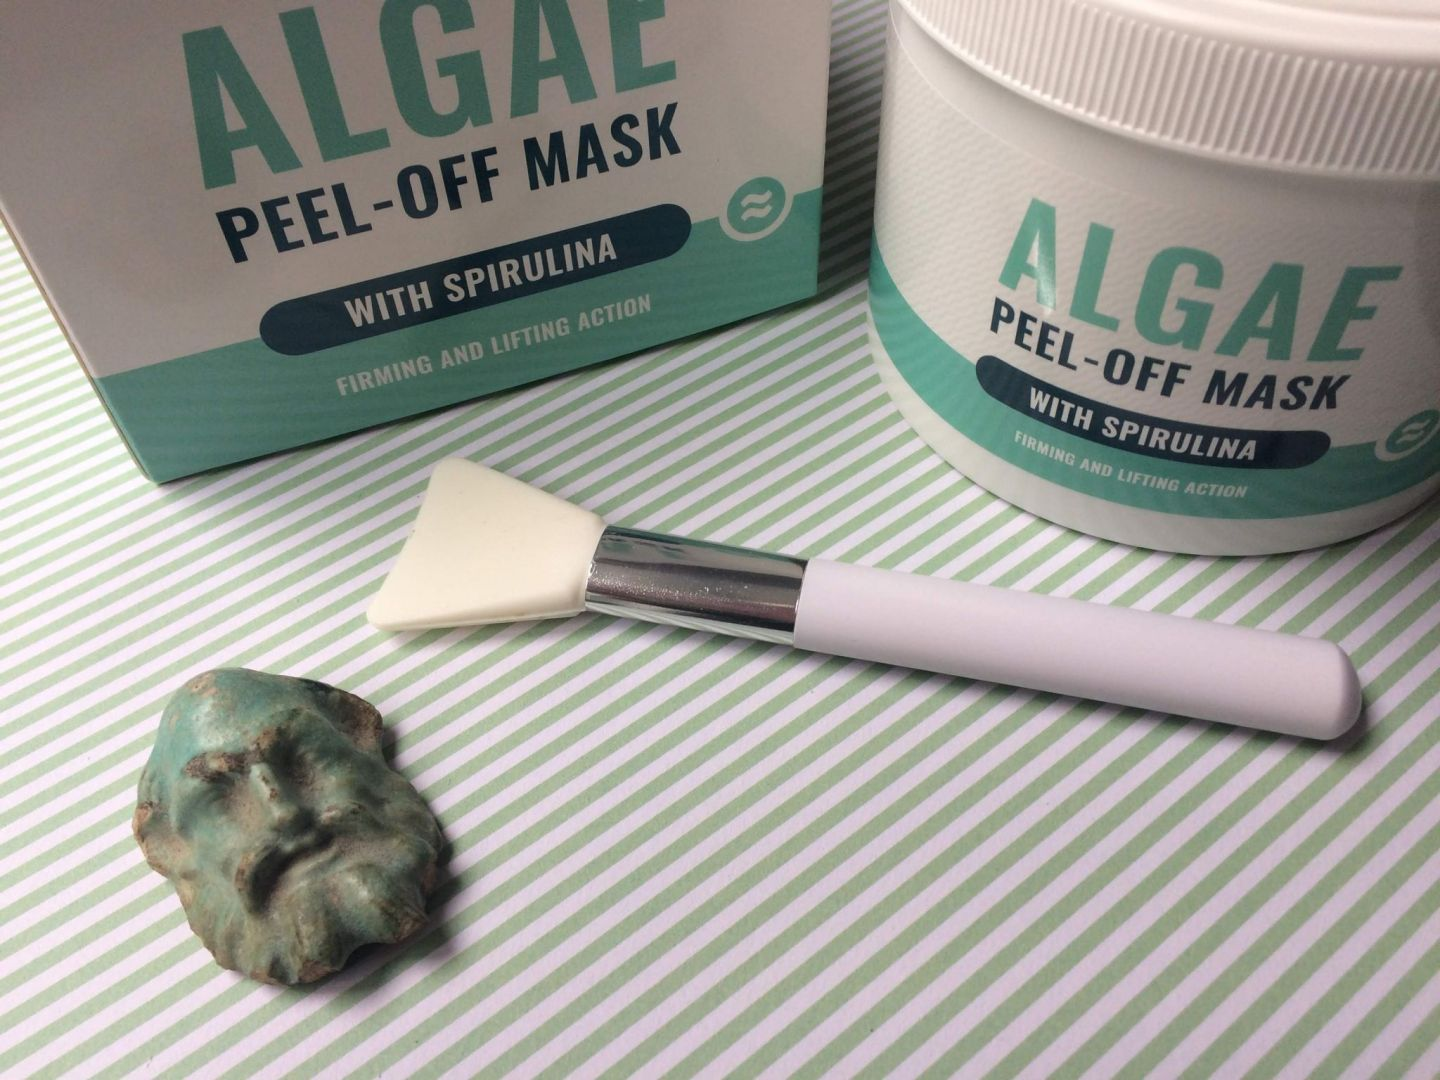 Algae Peel Off Mask with Spirulina by Ultrasonic Beauty